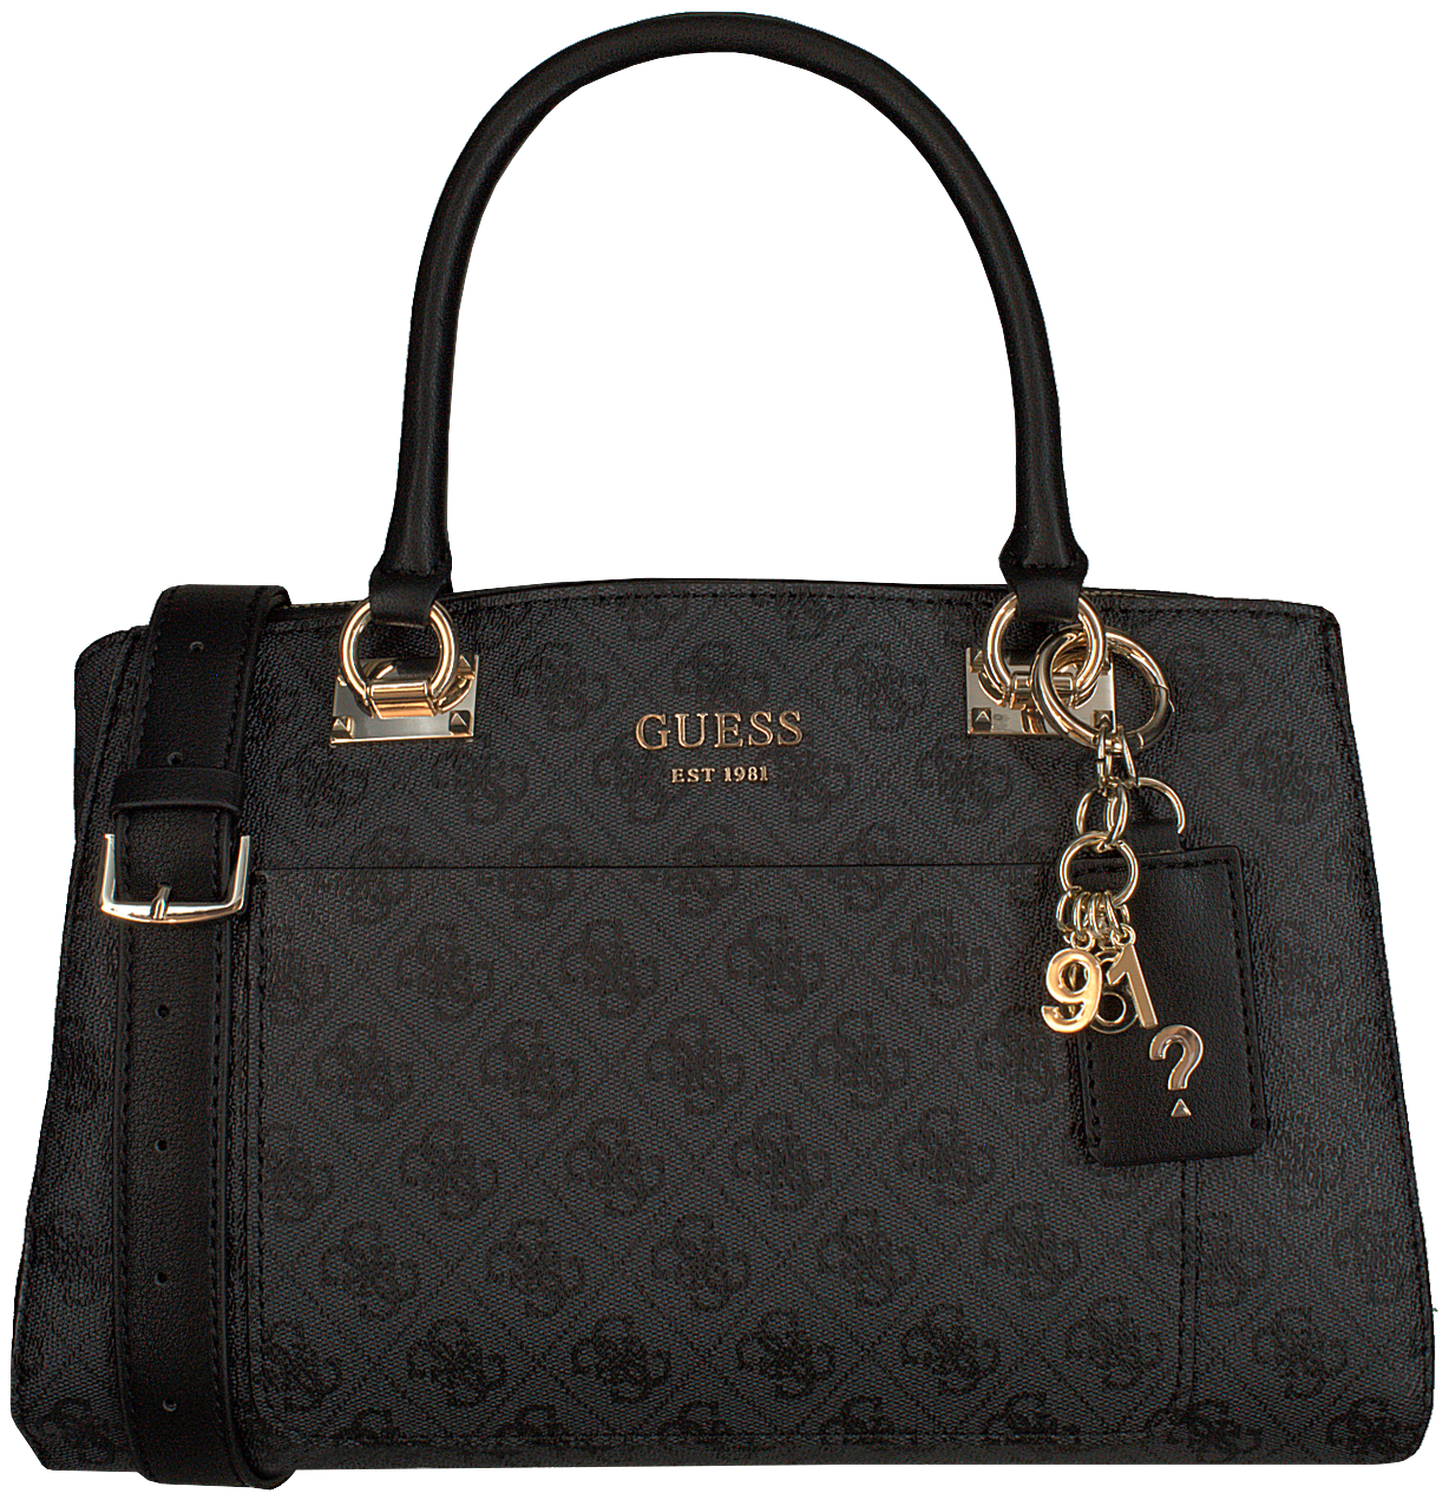 Grijze GUESS Handtas KATHRYN GIRLFRIEND SATCHEL Omoda.nl